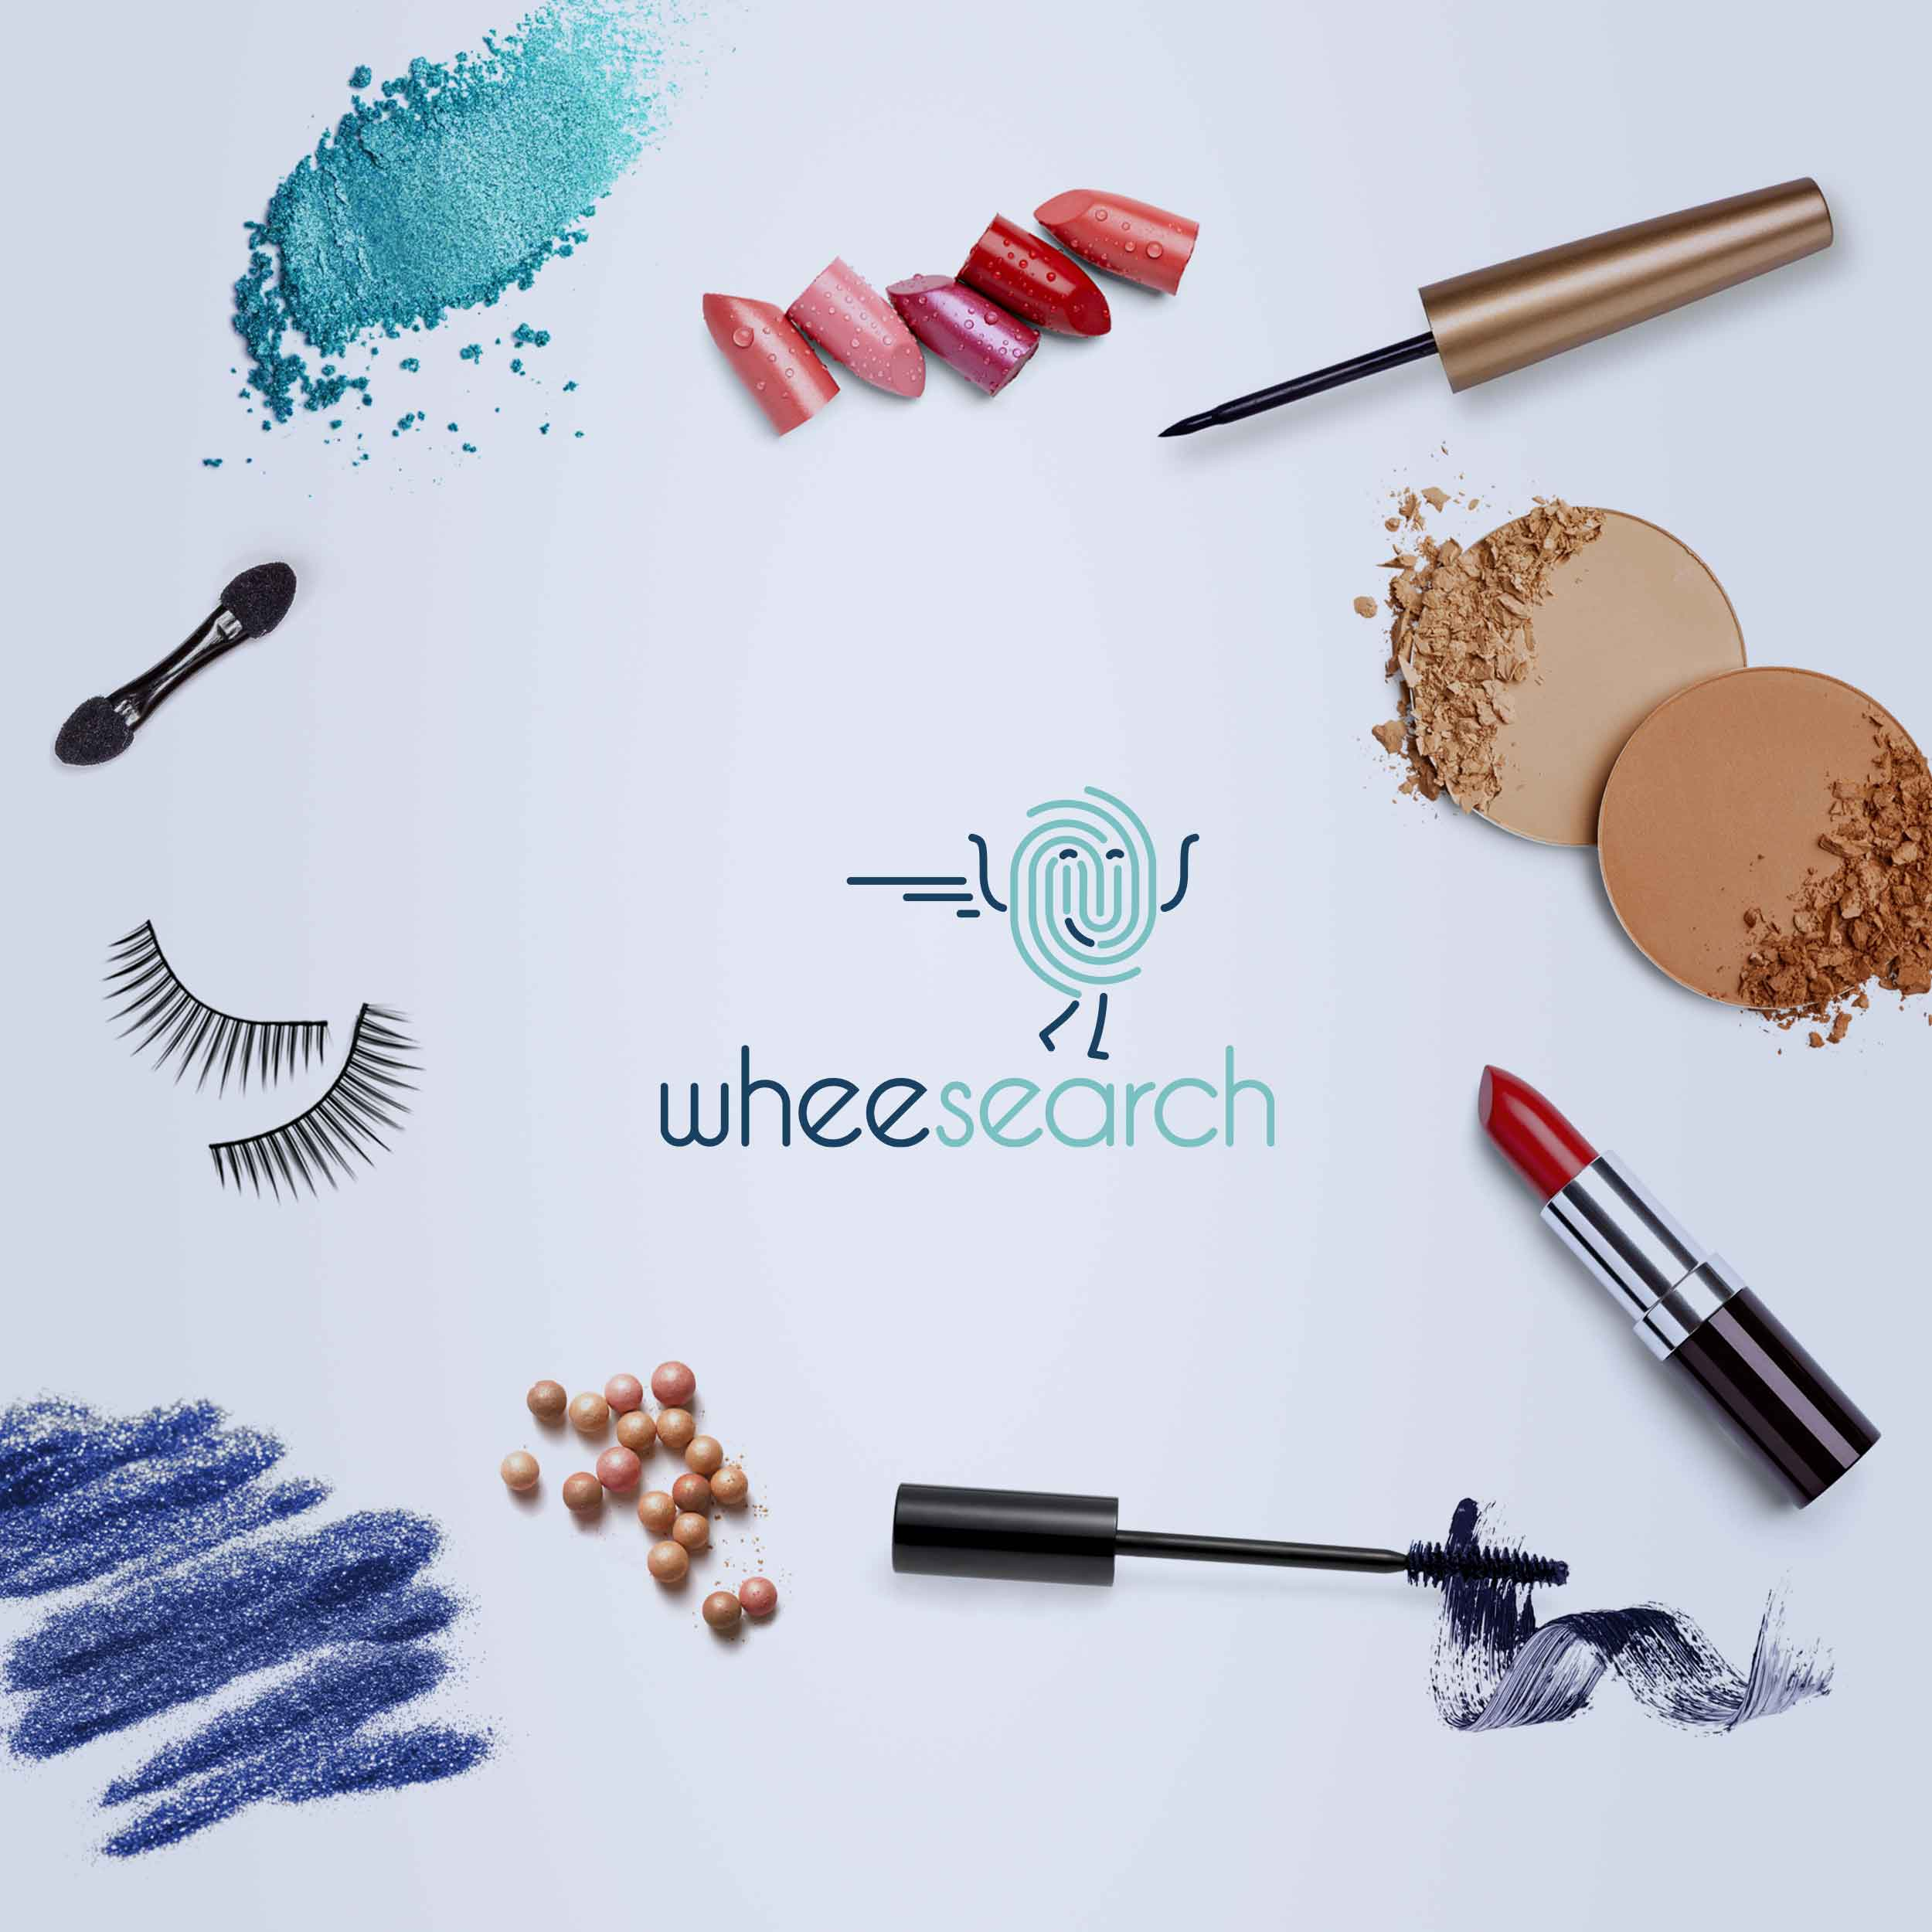 Lipstick, eyeshadow, mascara on a vanity created for the Wheesearch brand, a high-tech company in Silicon Valley.